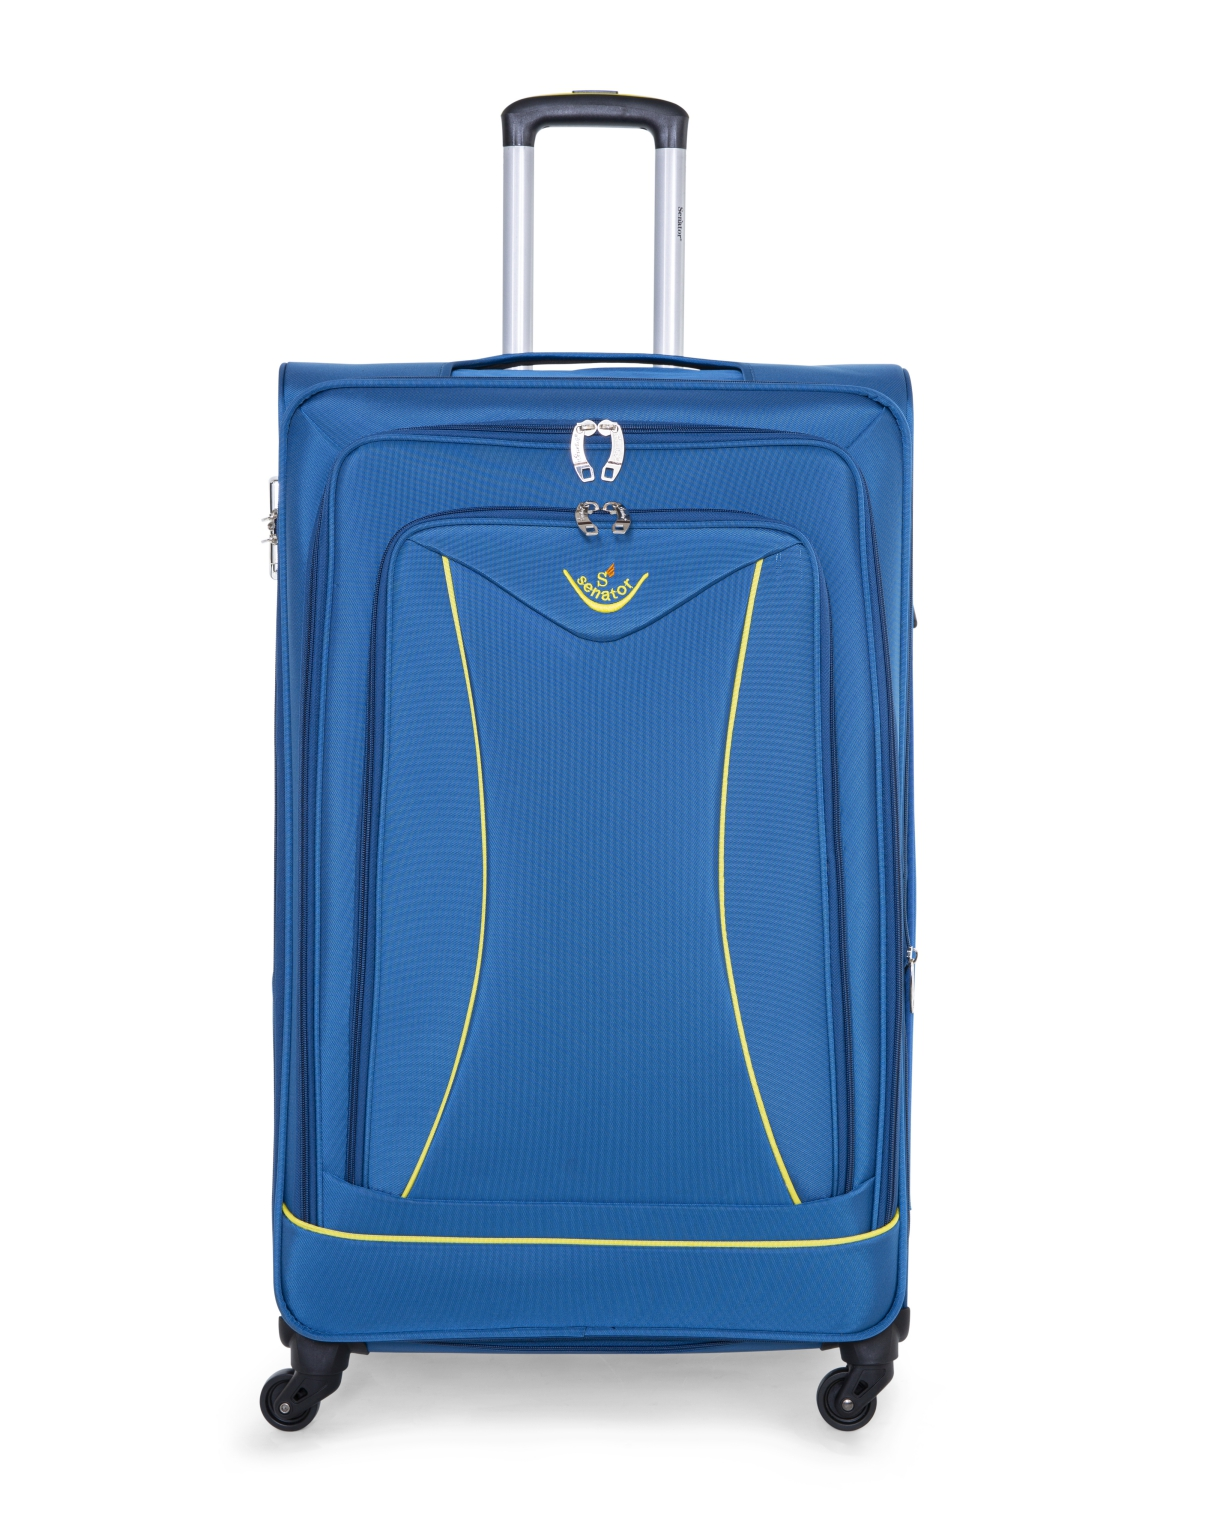 Senator Brand Softside 3 Piece Set of 4 Wheel Spinner Luggage Trolley in Blue Color LL032-3_BLU